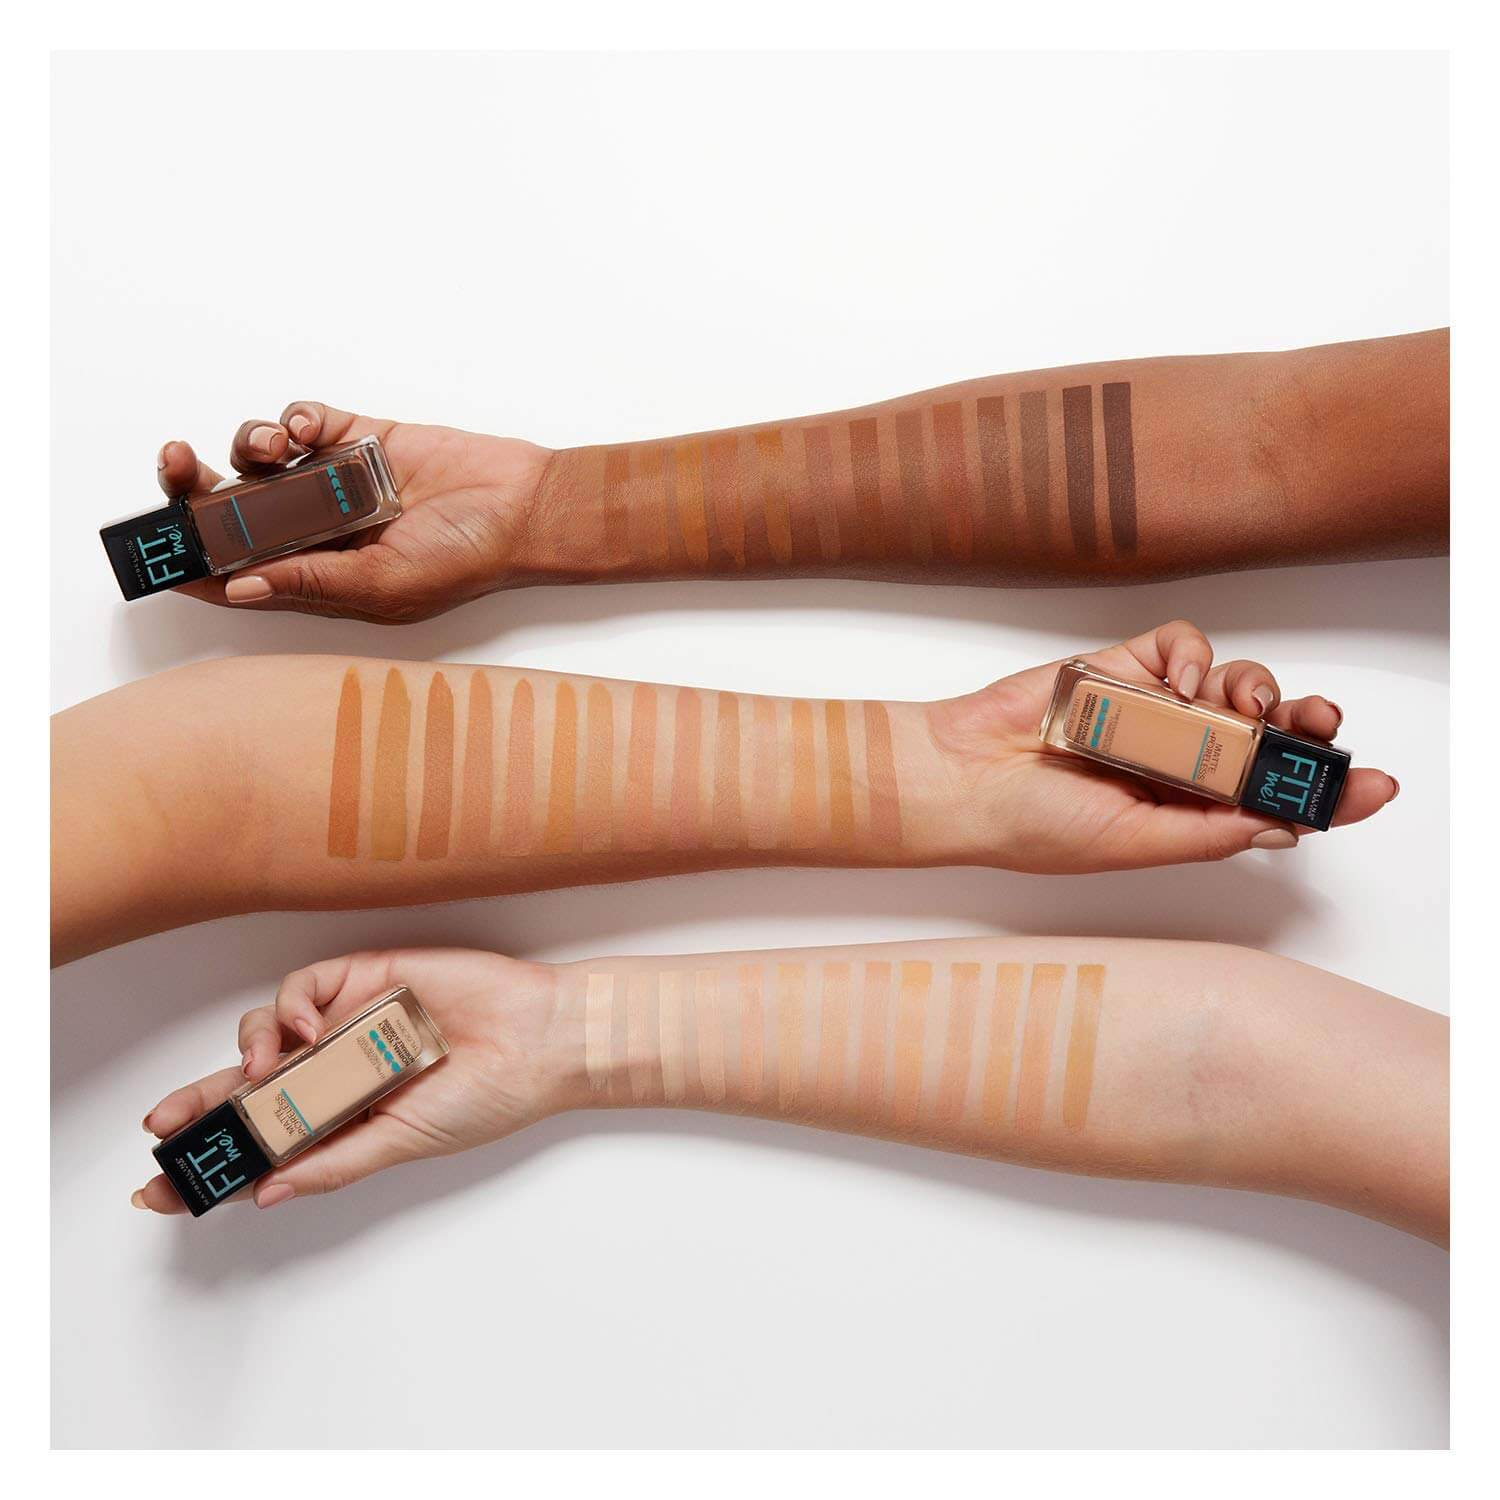 Hands showing range of Maybelline Fit Me foundation shades